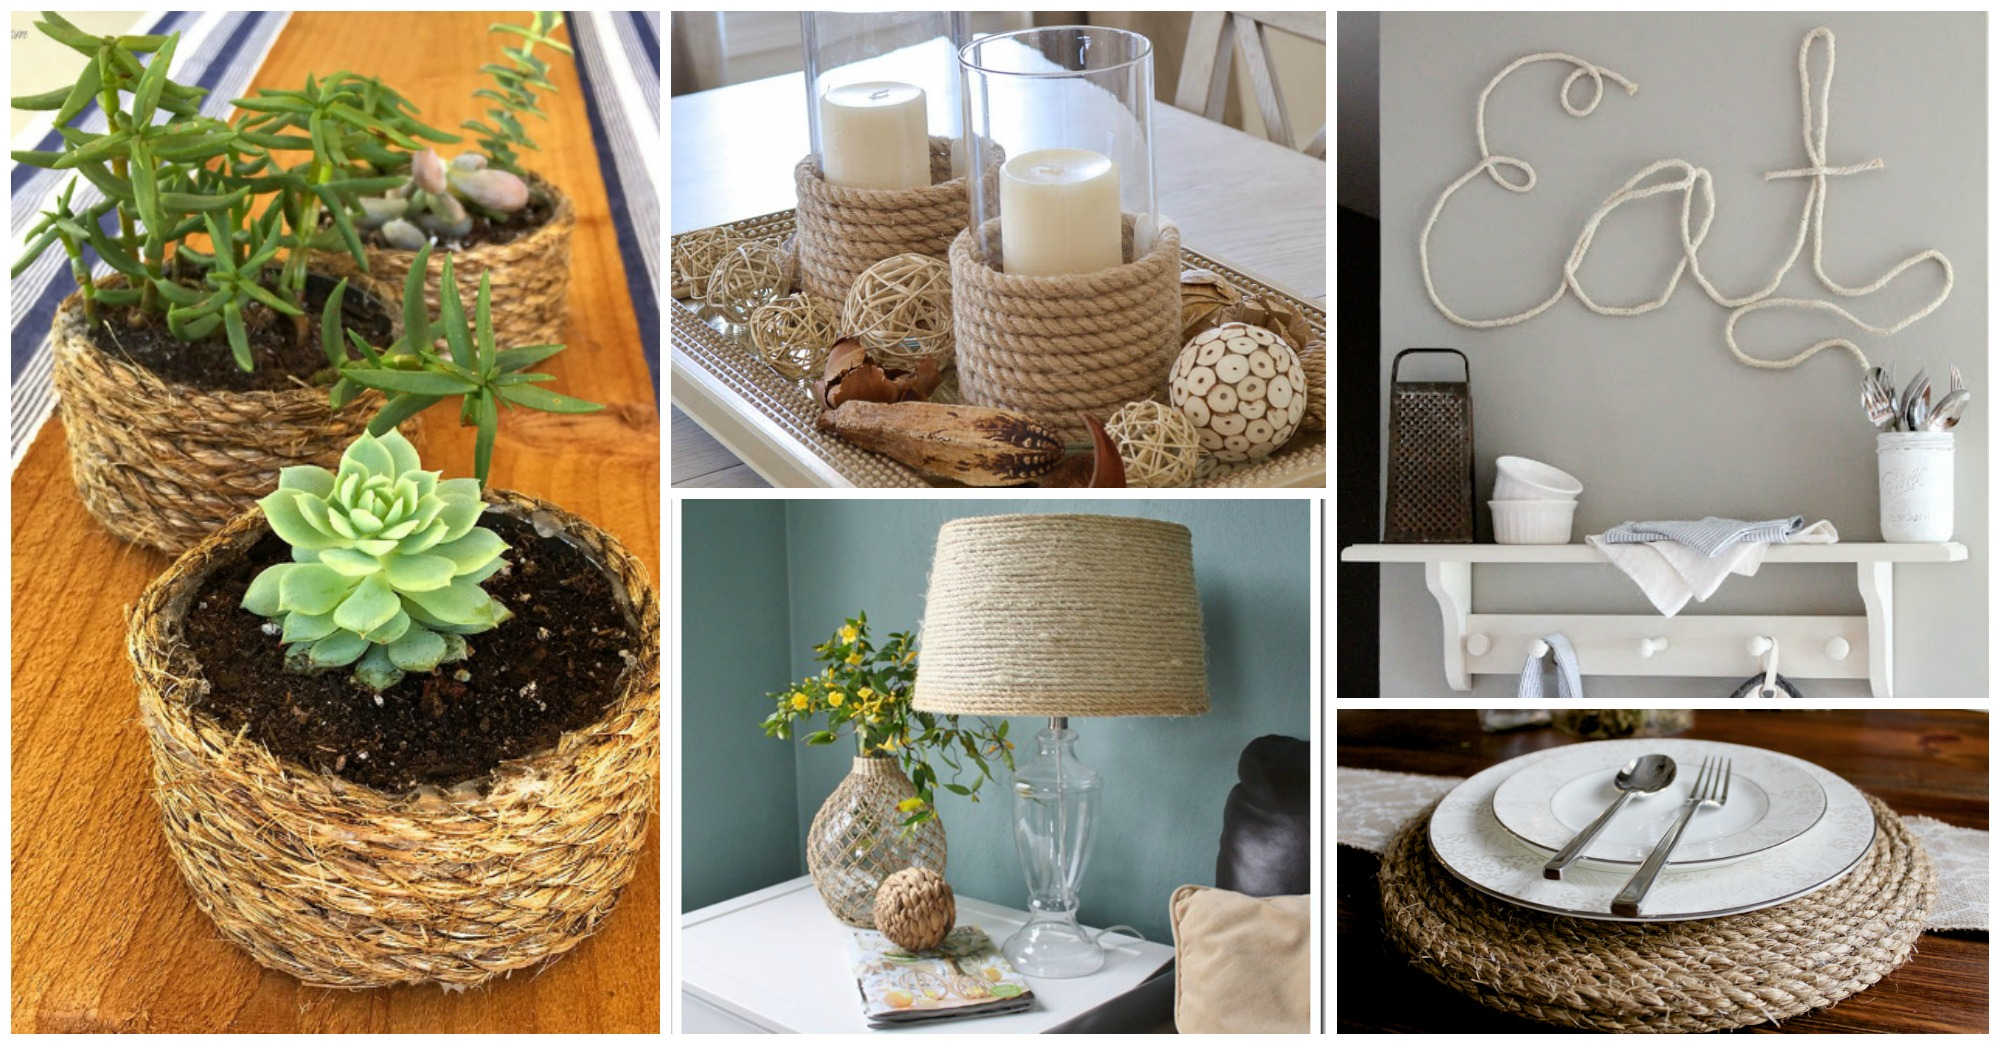 30 Amazing Diy Rope Projects To Beautify Your Home Page 5 Of 5 - Diy-hogar